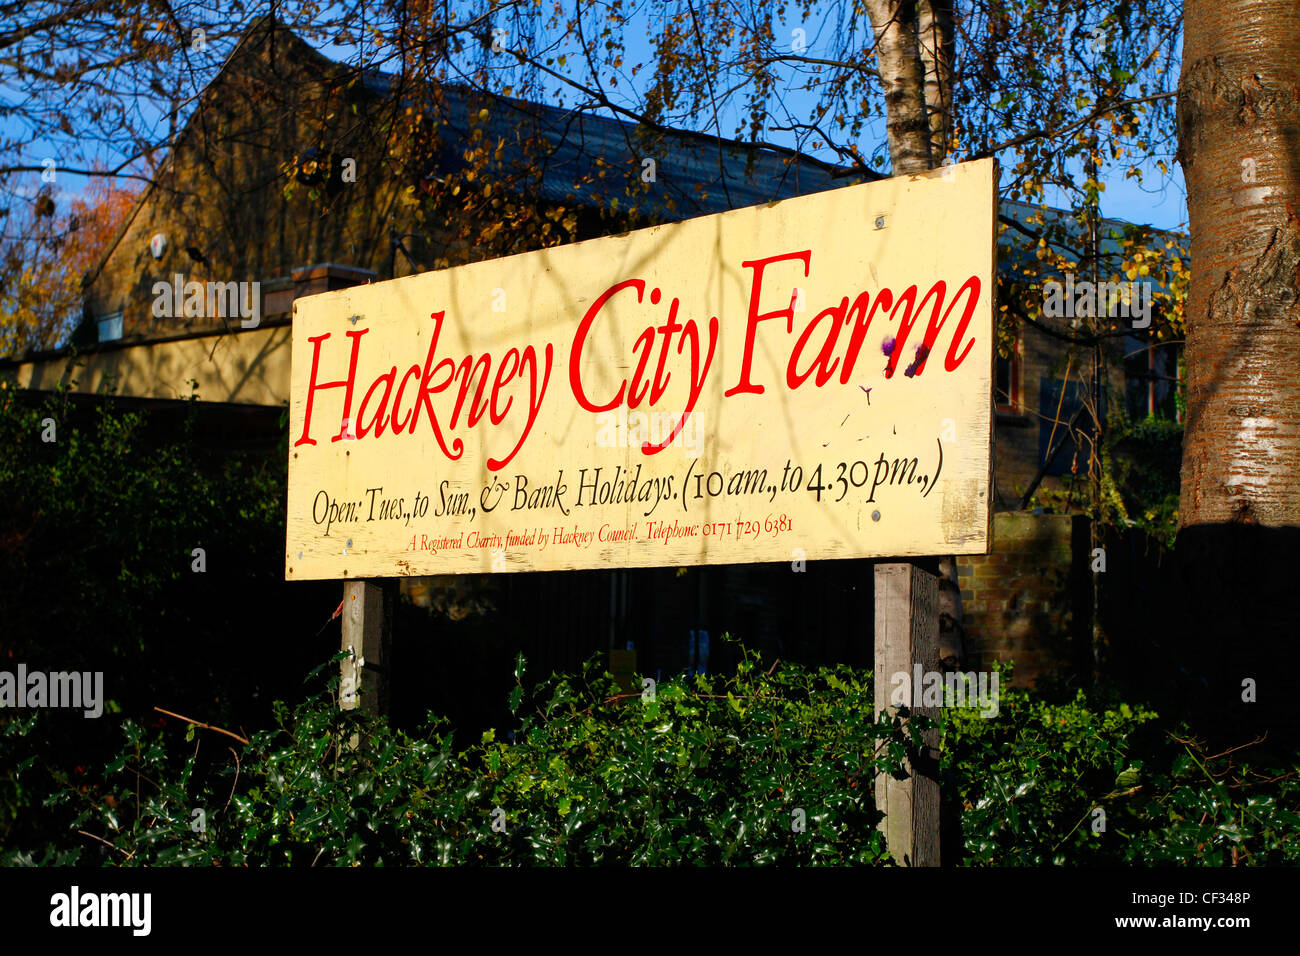 Hackney City Farm sign displaying opening times. Hackney City Farm is a community project offering city dwellers - Stock Image